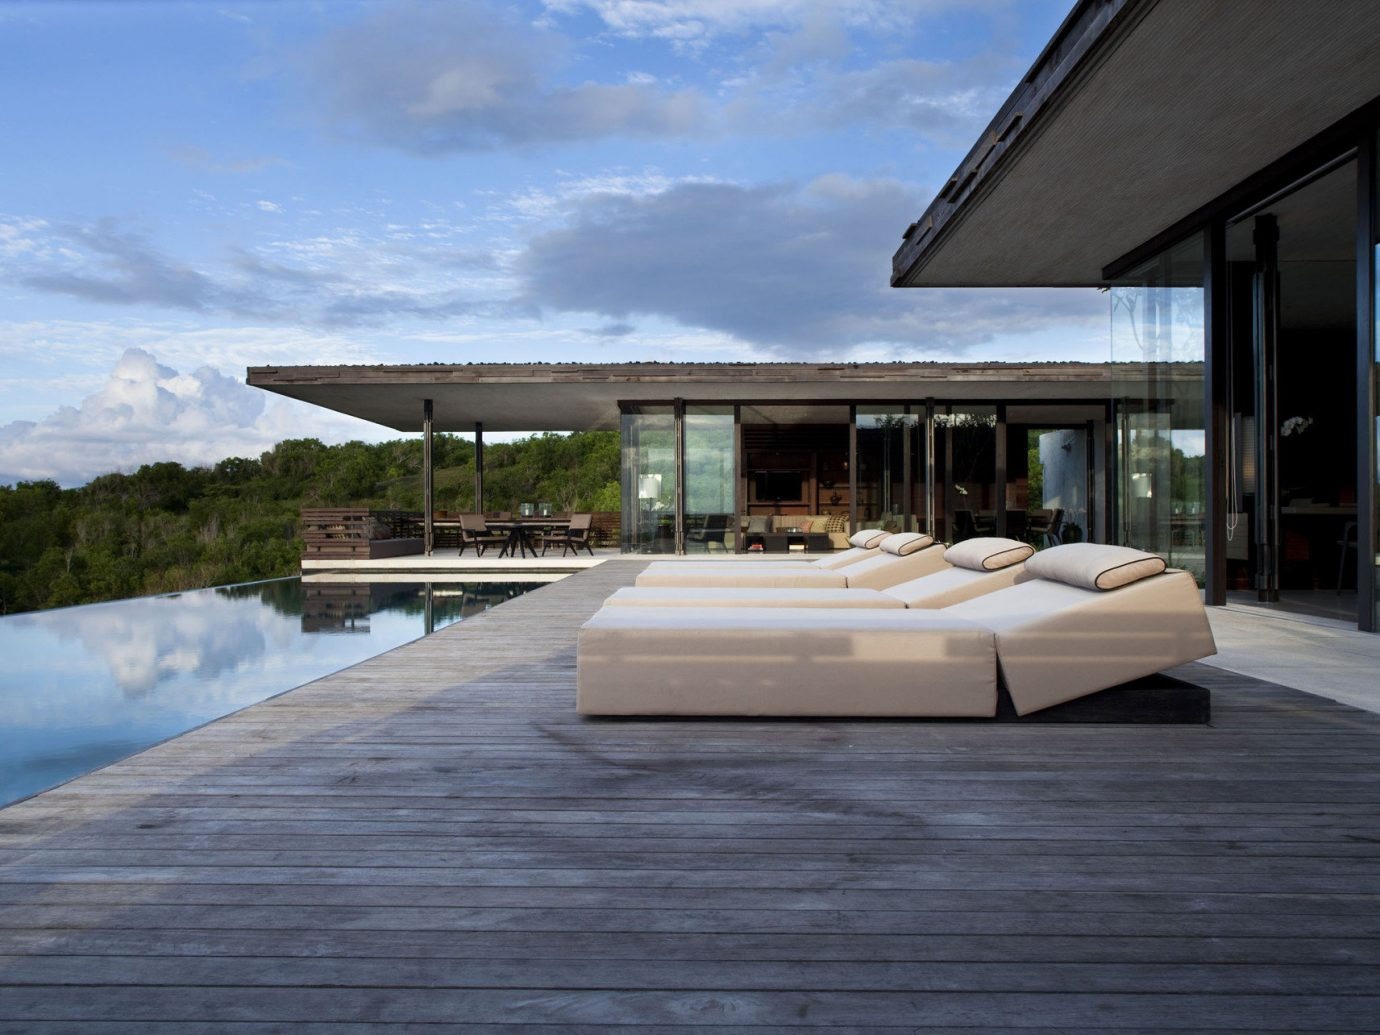 Health + Wellness Hotels sky outdoor property house Architecture estate home swimming pool real estate facade outdoor structure